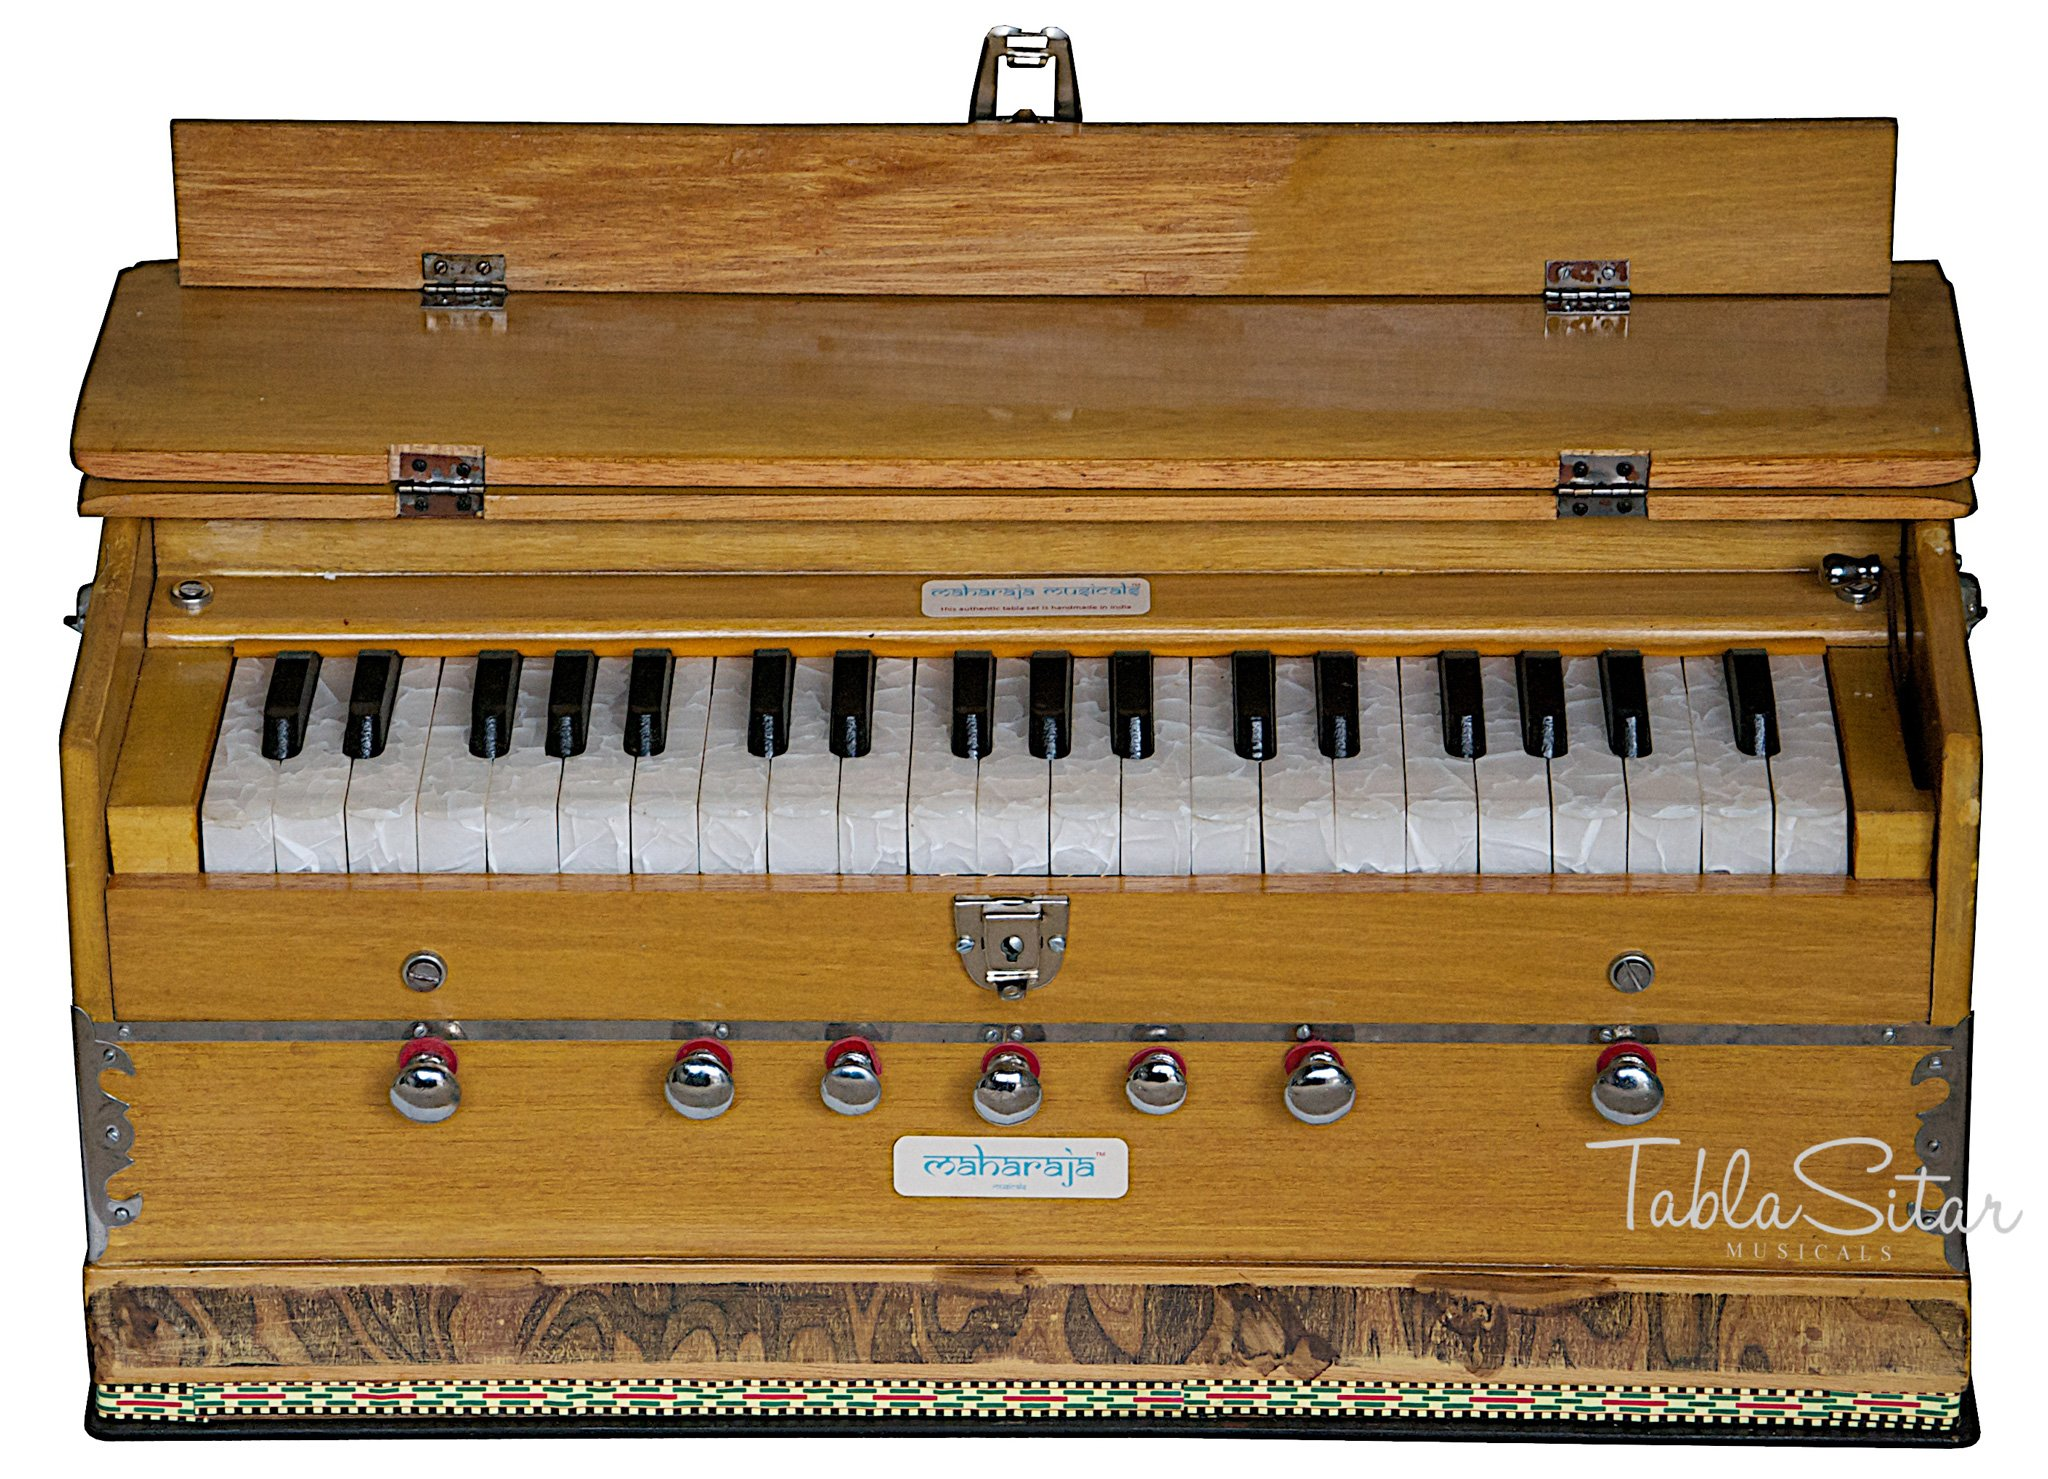 Harmonium, Maharaja Musicals, In USA, 3 1/4 Octave, Double Reed, Coupler, Natural Color, 7 Stops, Standard, Book, Padded Bag, Tuned to A440, Musical Instrument Indian (PDI-ABF) by Maharaja Musicals